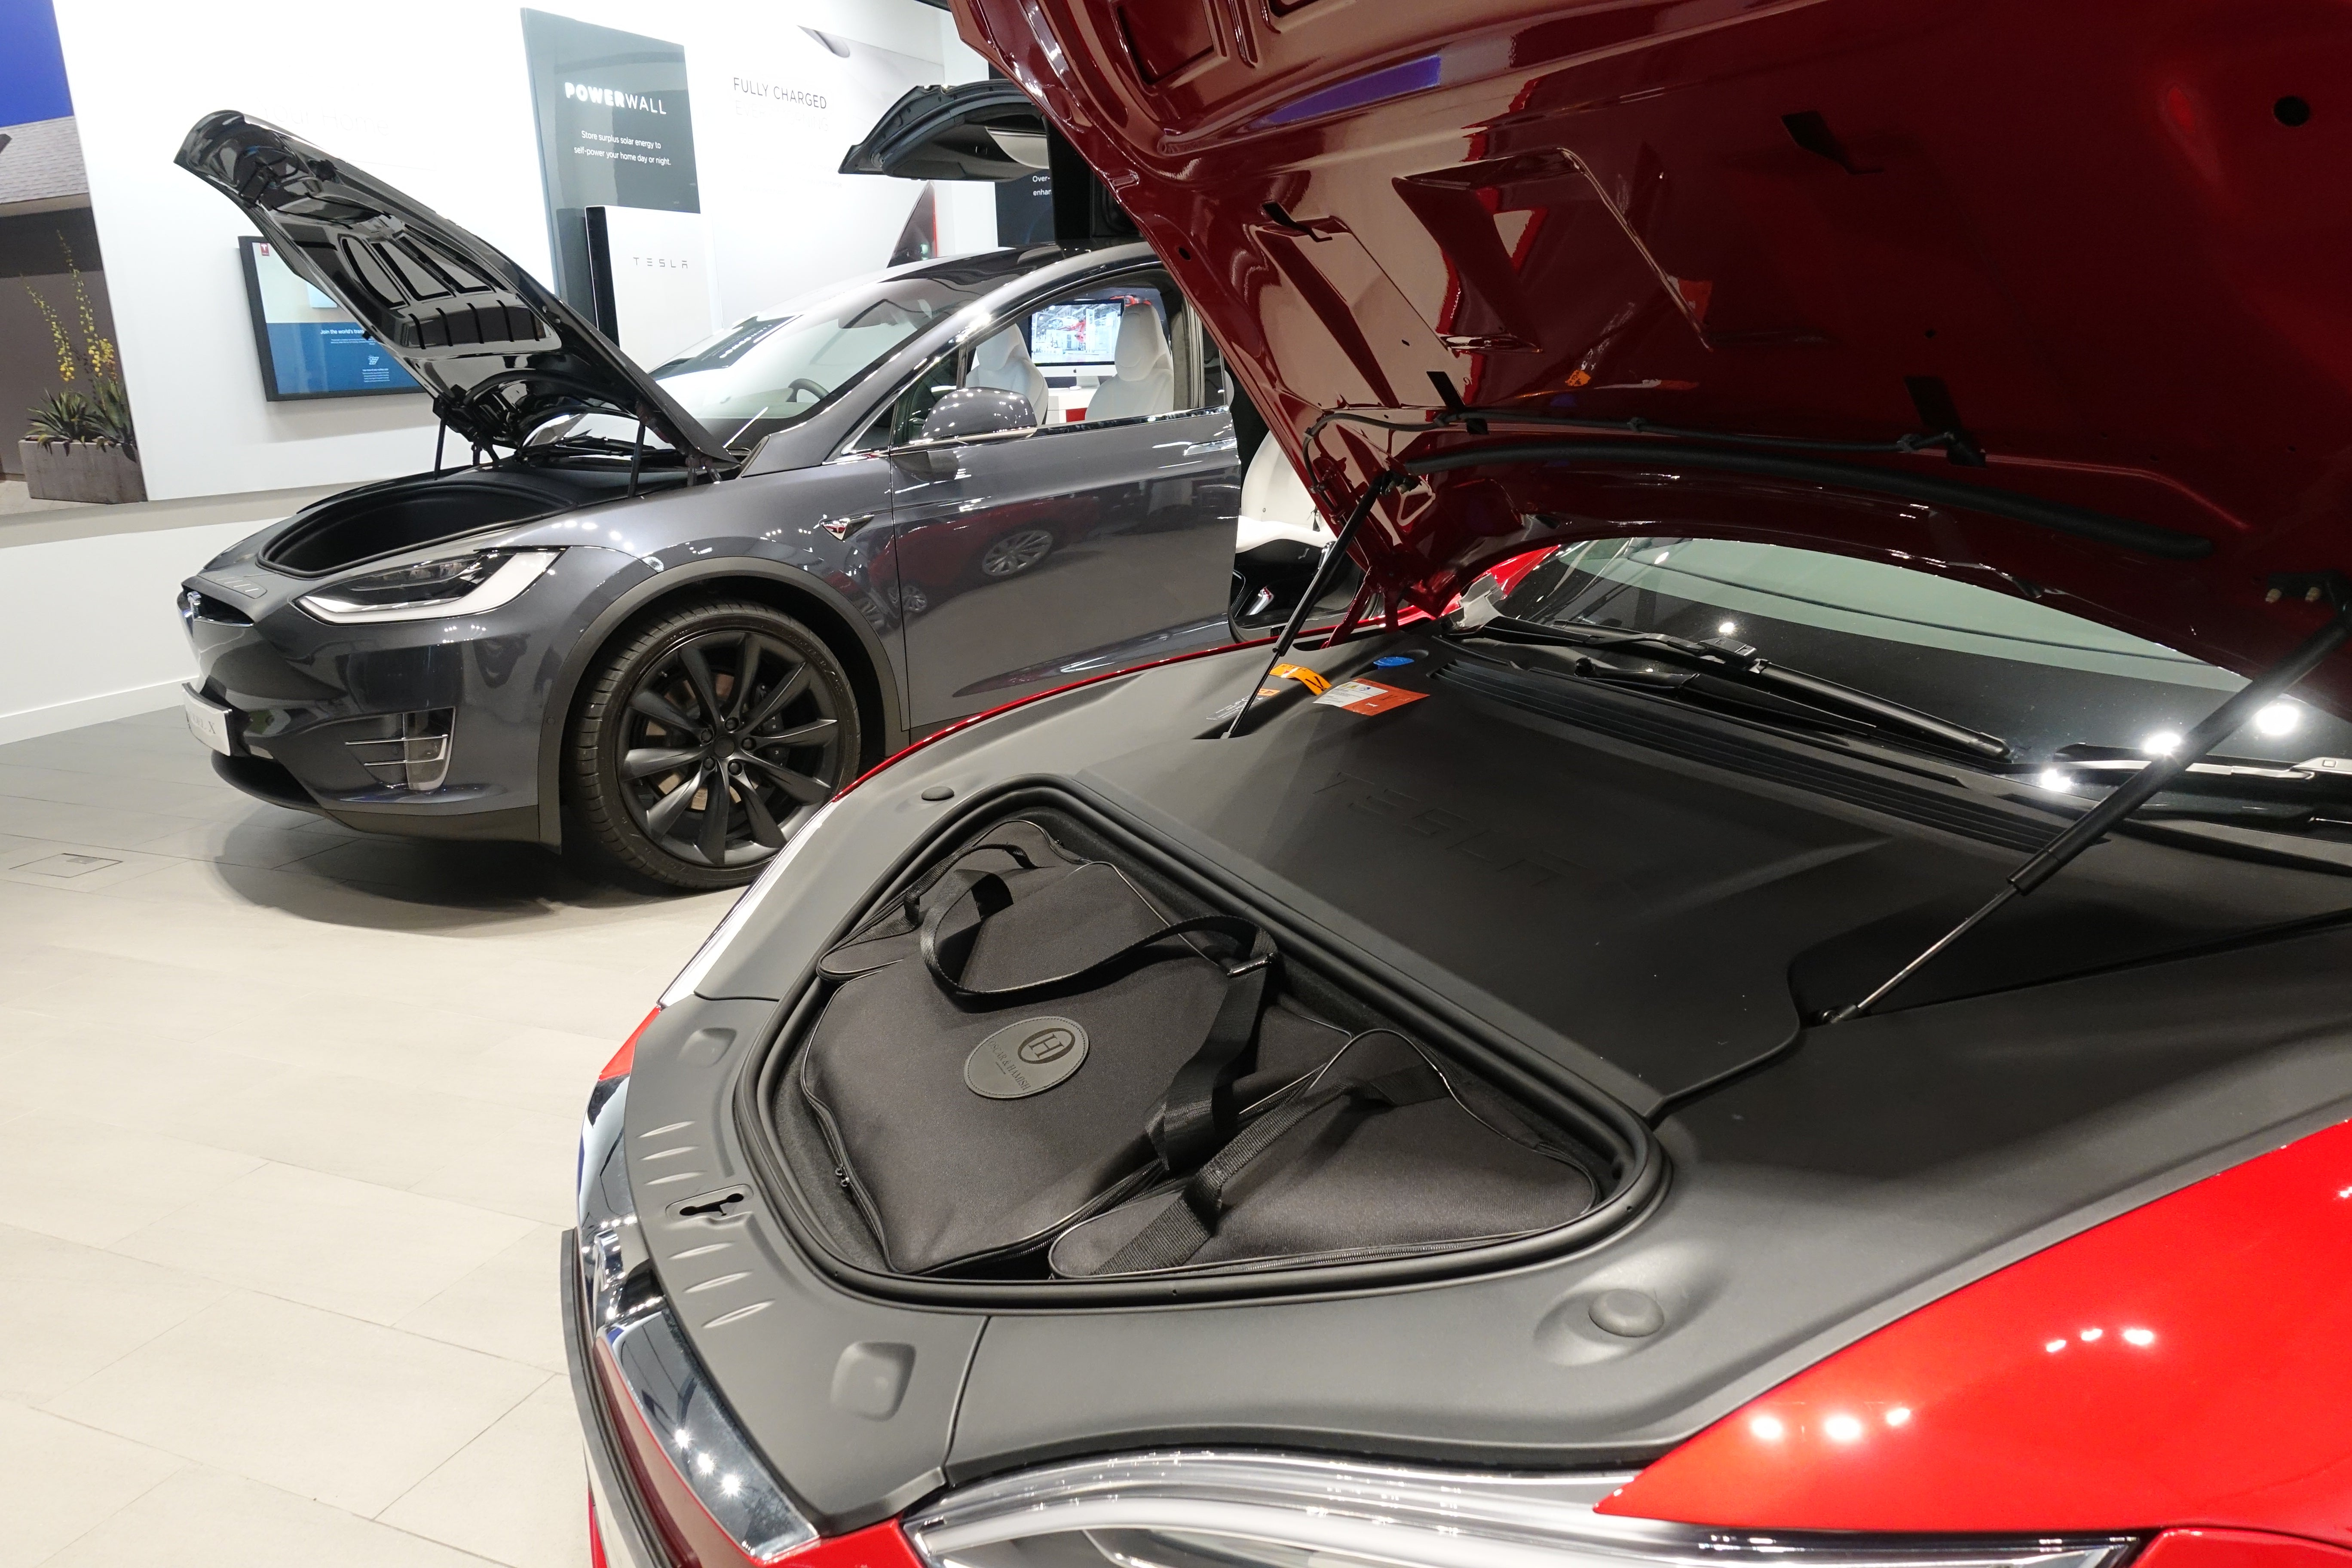 Tesla Model S 3 piece bespoke tailored luggage solution for